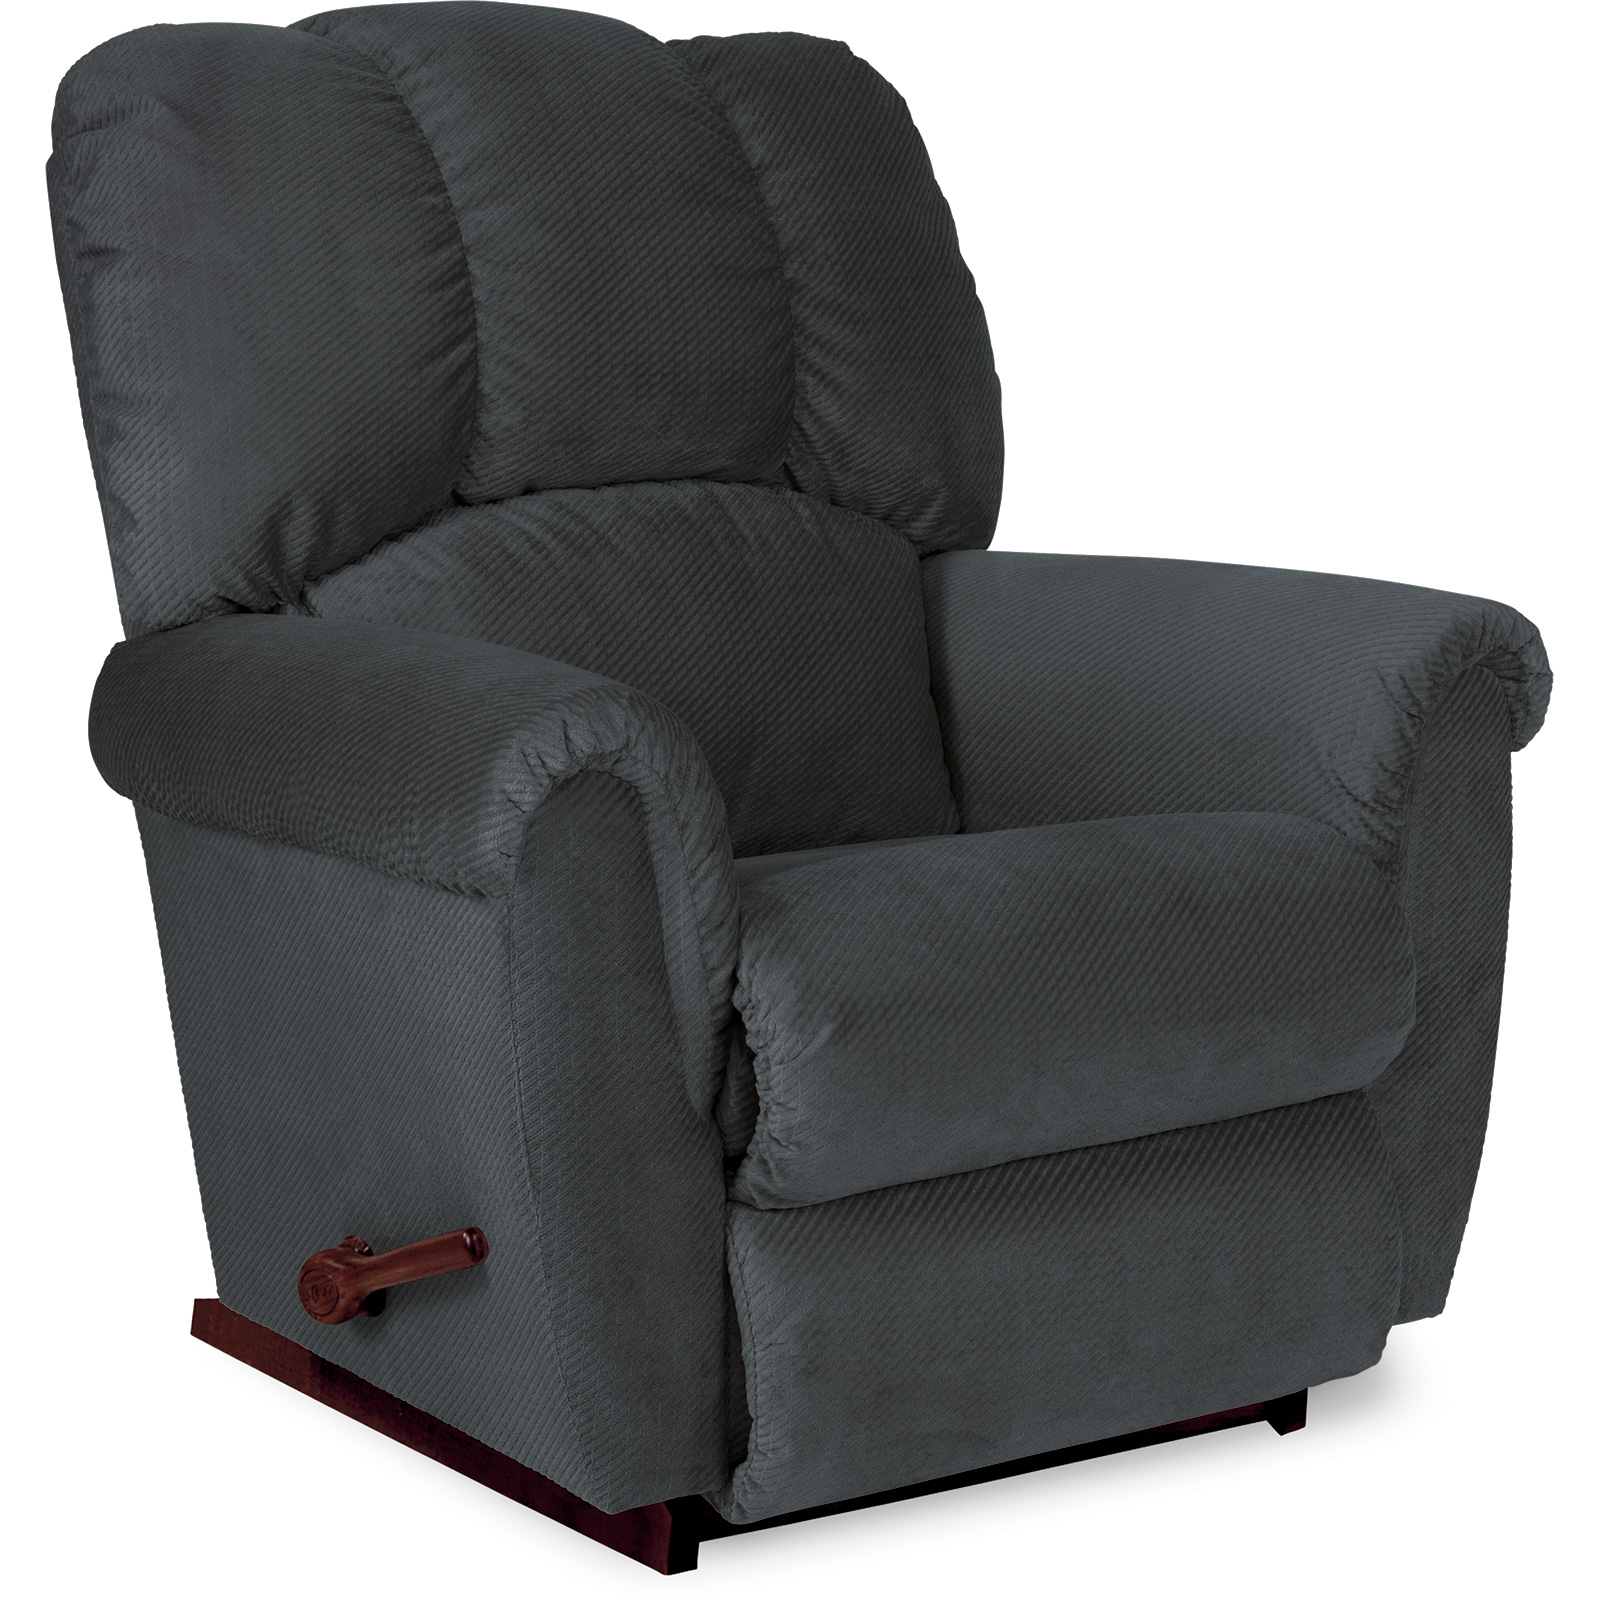 la z boy lift chair hand control retro lounge chairs recliners collection york furniture